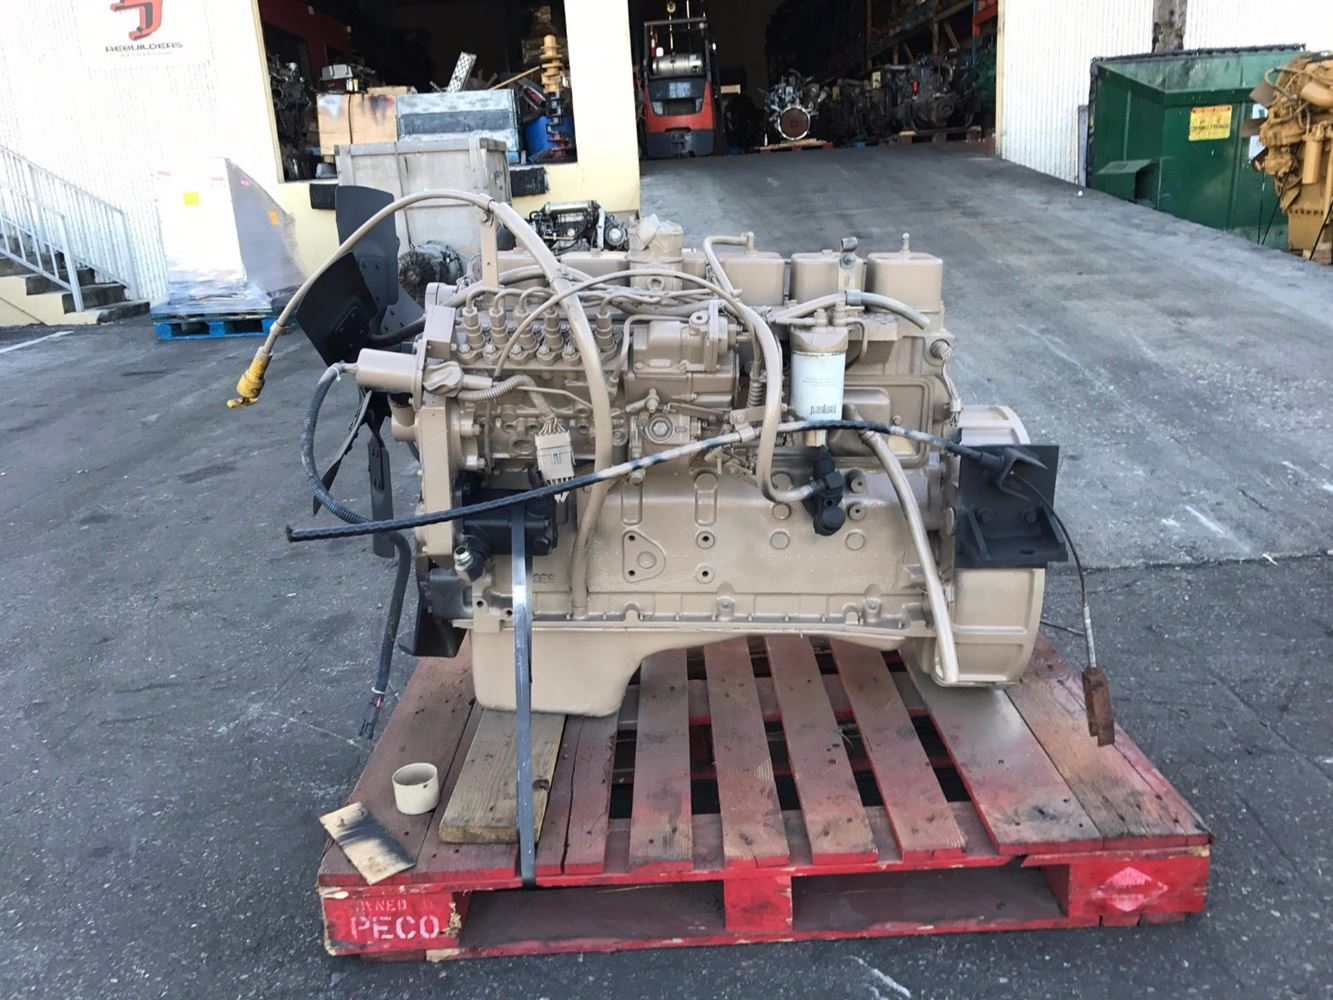 Used Cummins Engines For Sale >> Cummins 6BT 5.9 (Stock #003114) | Engine Assys | TPI